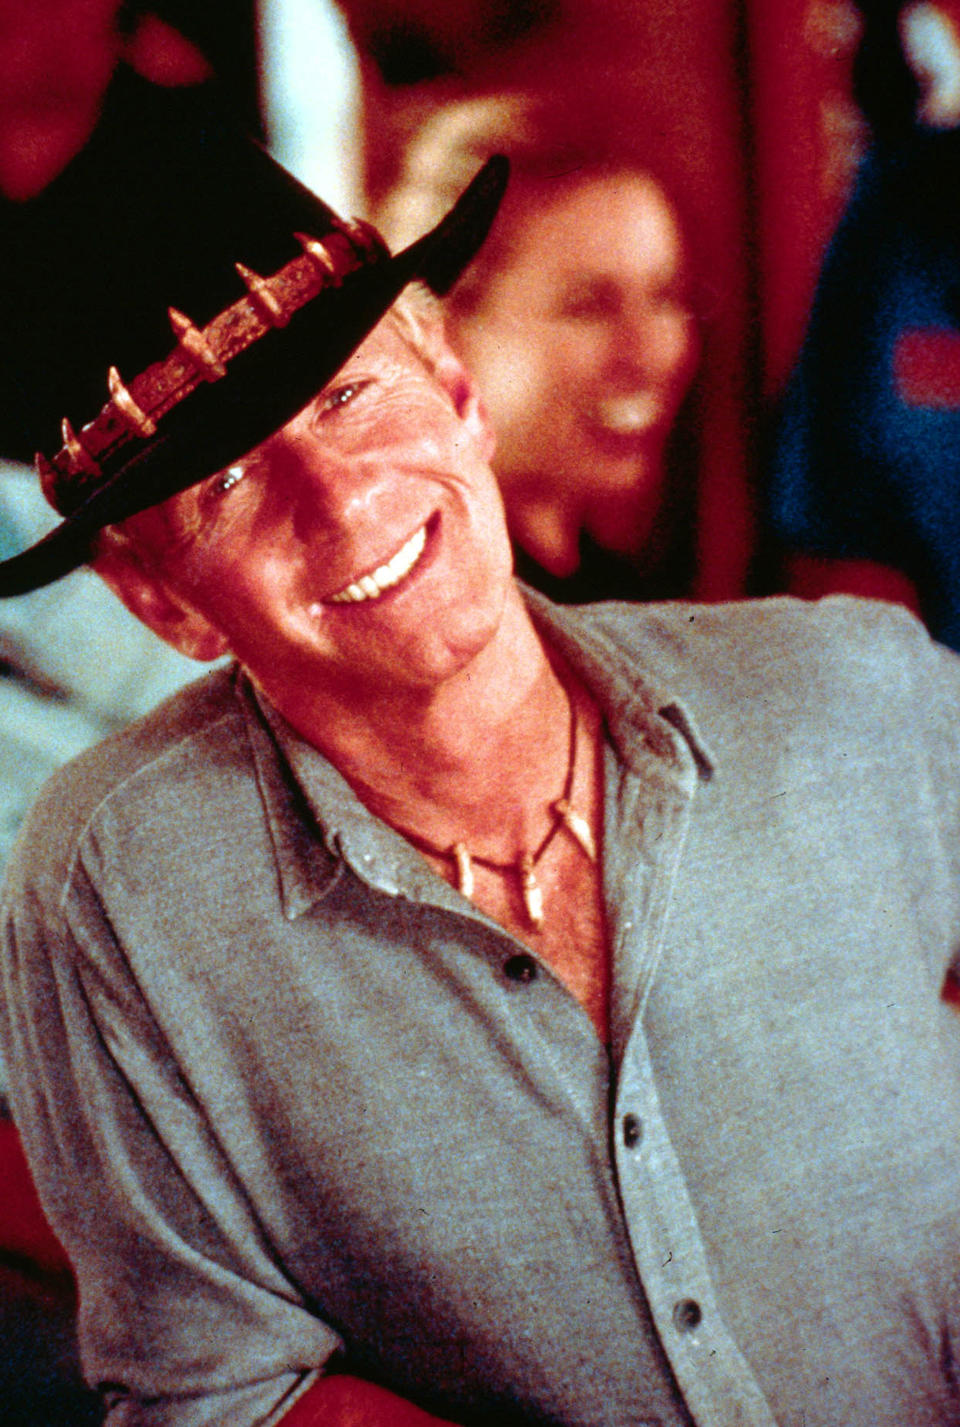 391562 02: Actor Paul Hogan poses for a photo on the set of the film